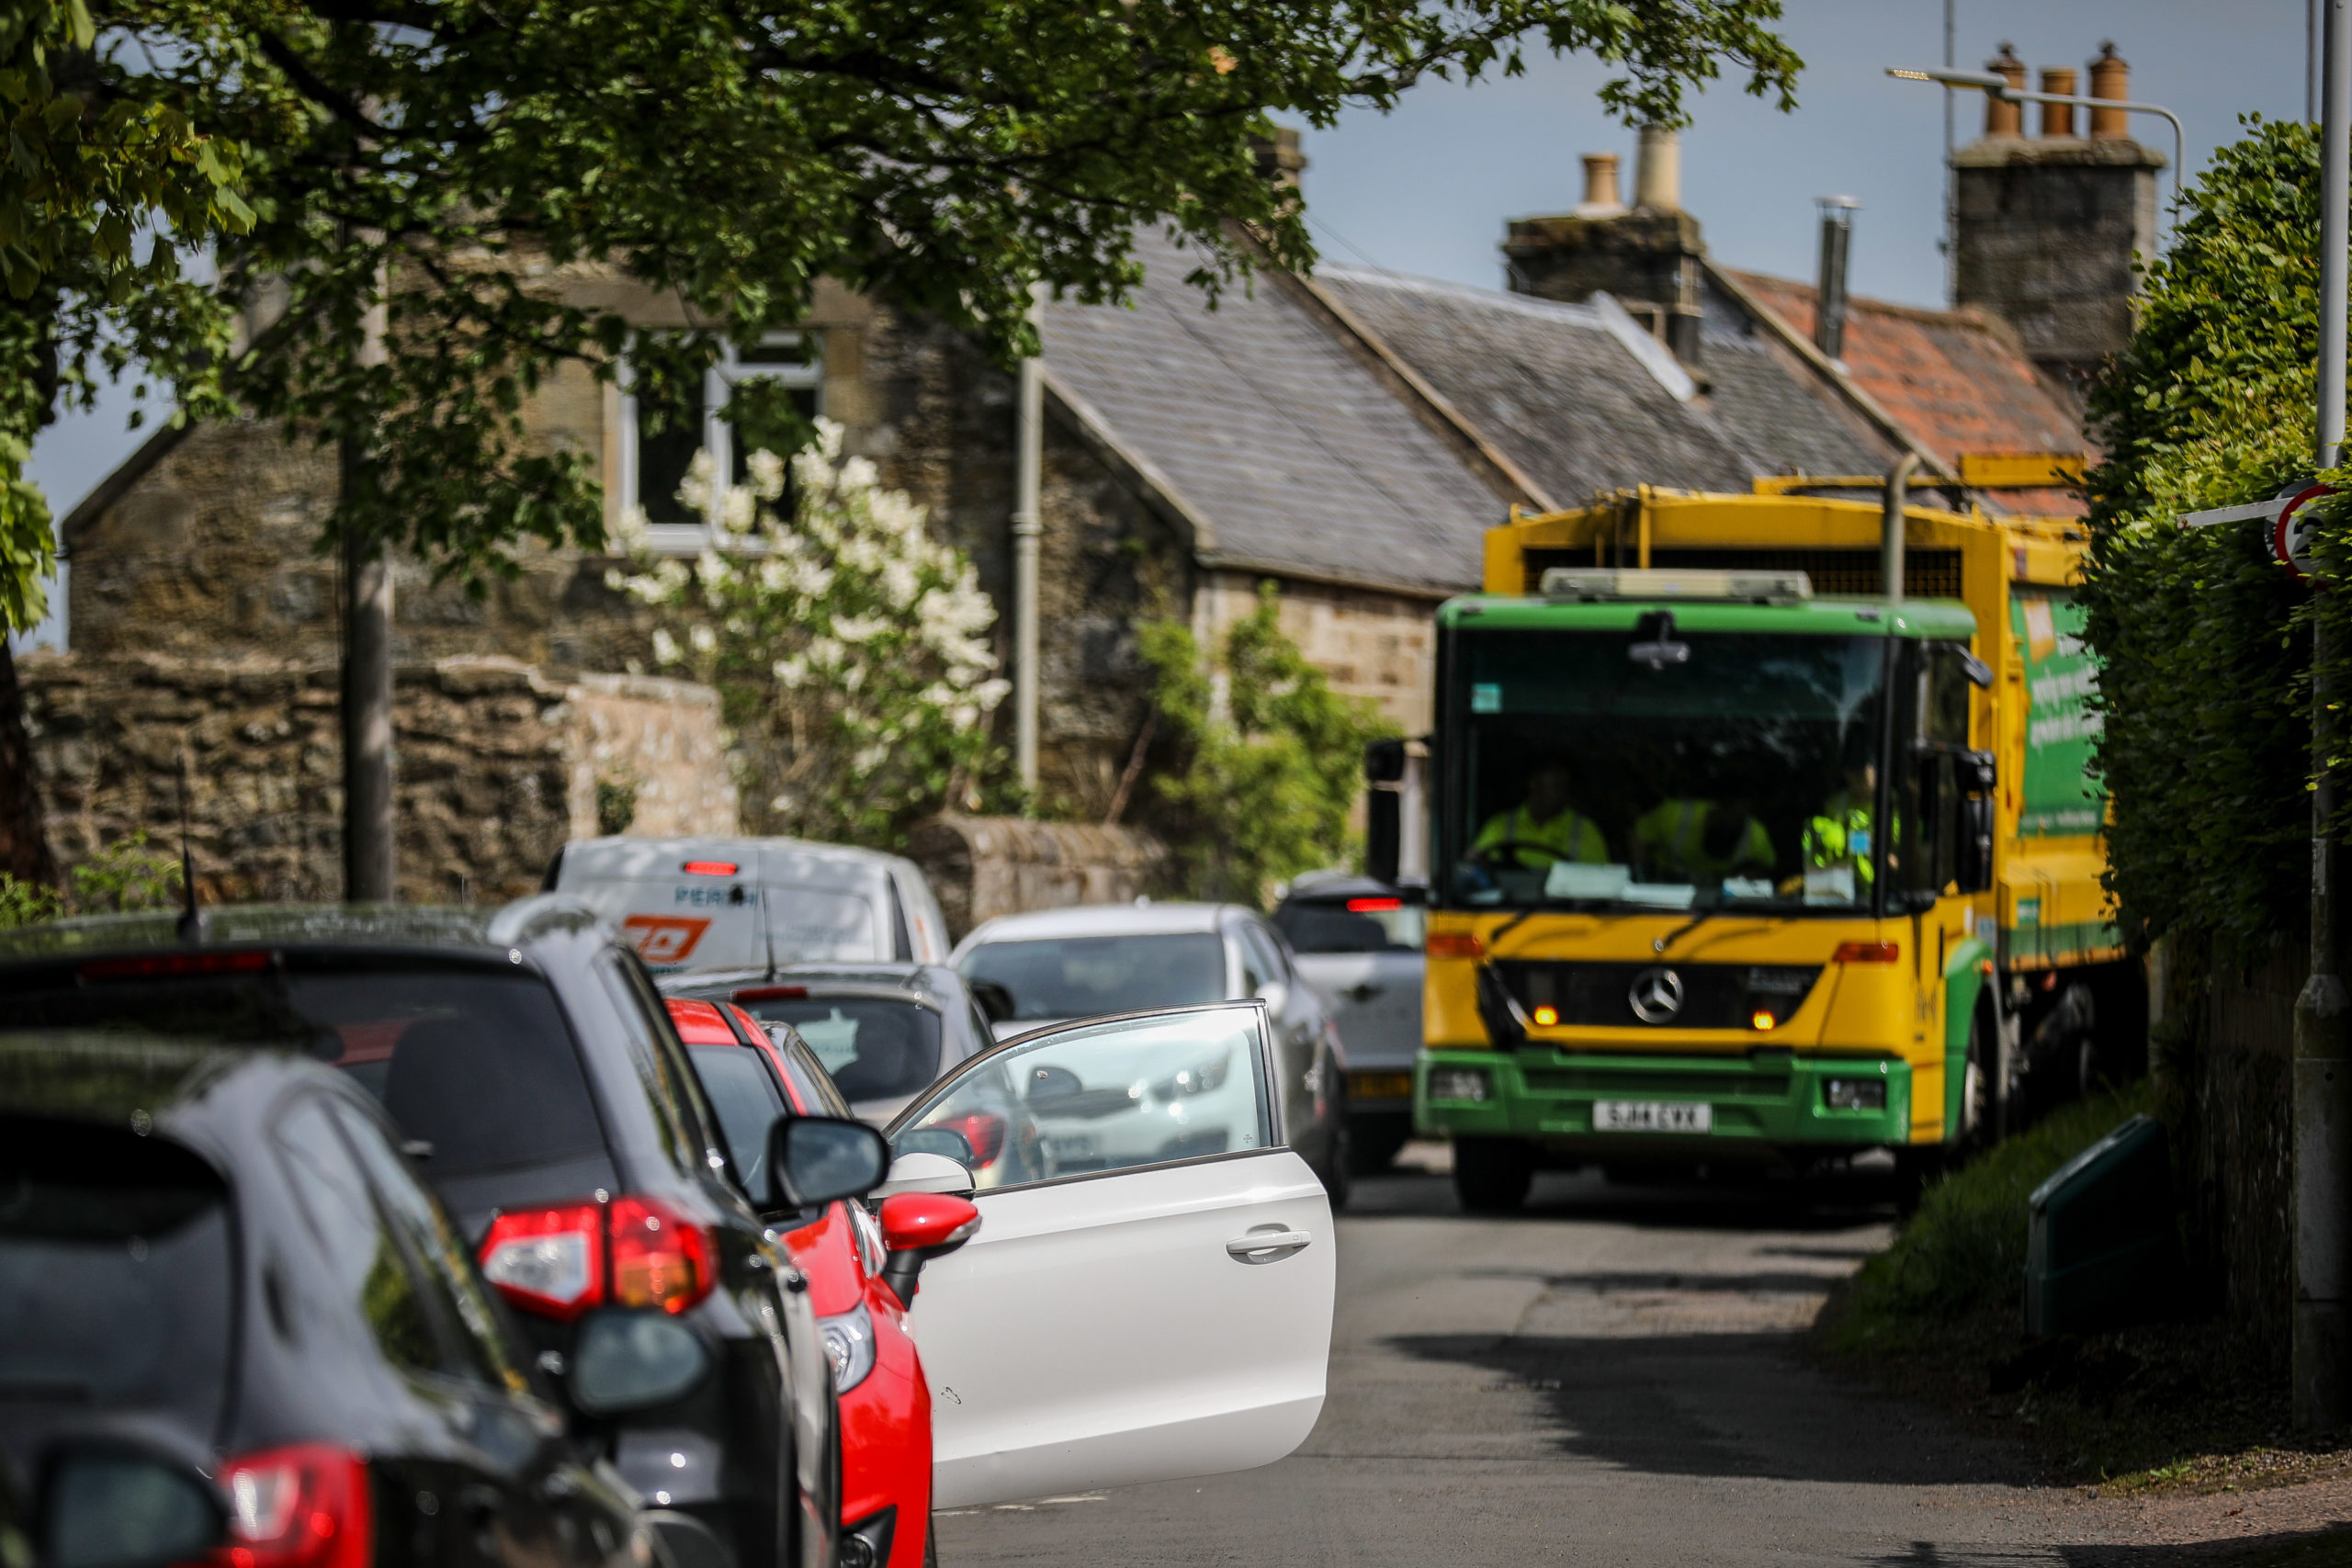 Fife Council recycling truck struggles to pass parked vehicles lining the road leading to the entrance of Falkland Estate